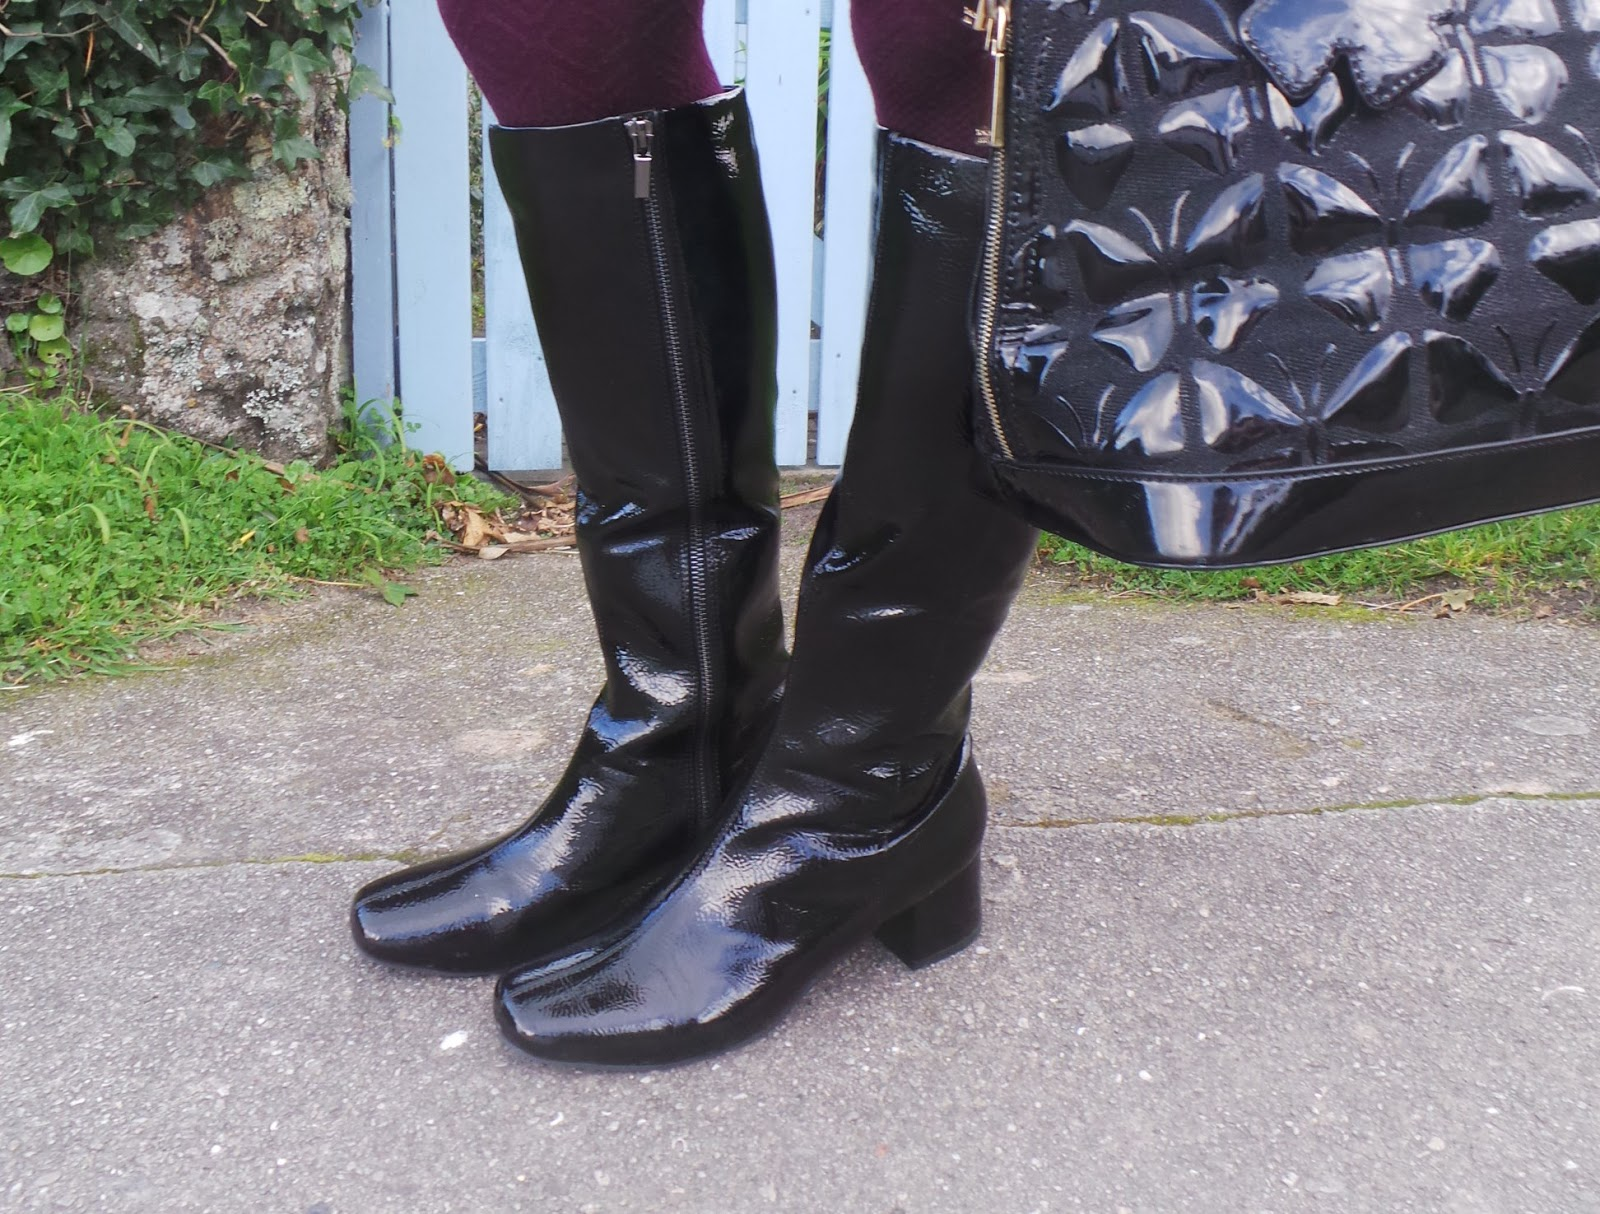 Image showing a close up of the black patent boots worn by Anna Parkes for the 5 Over 50 Challenge These Boots were Made for Walking